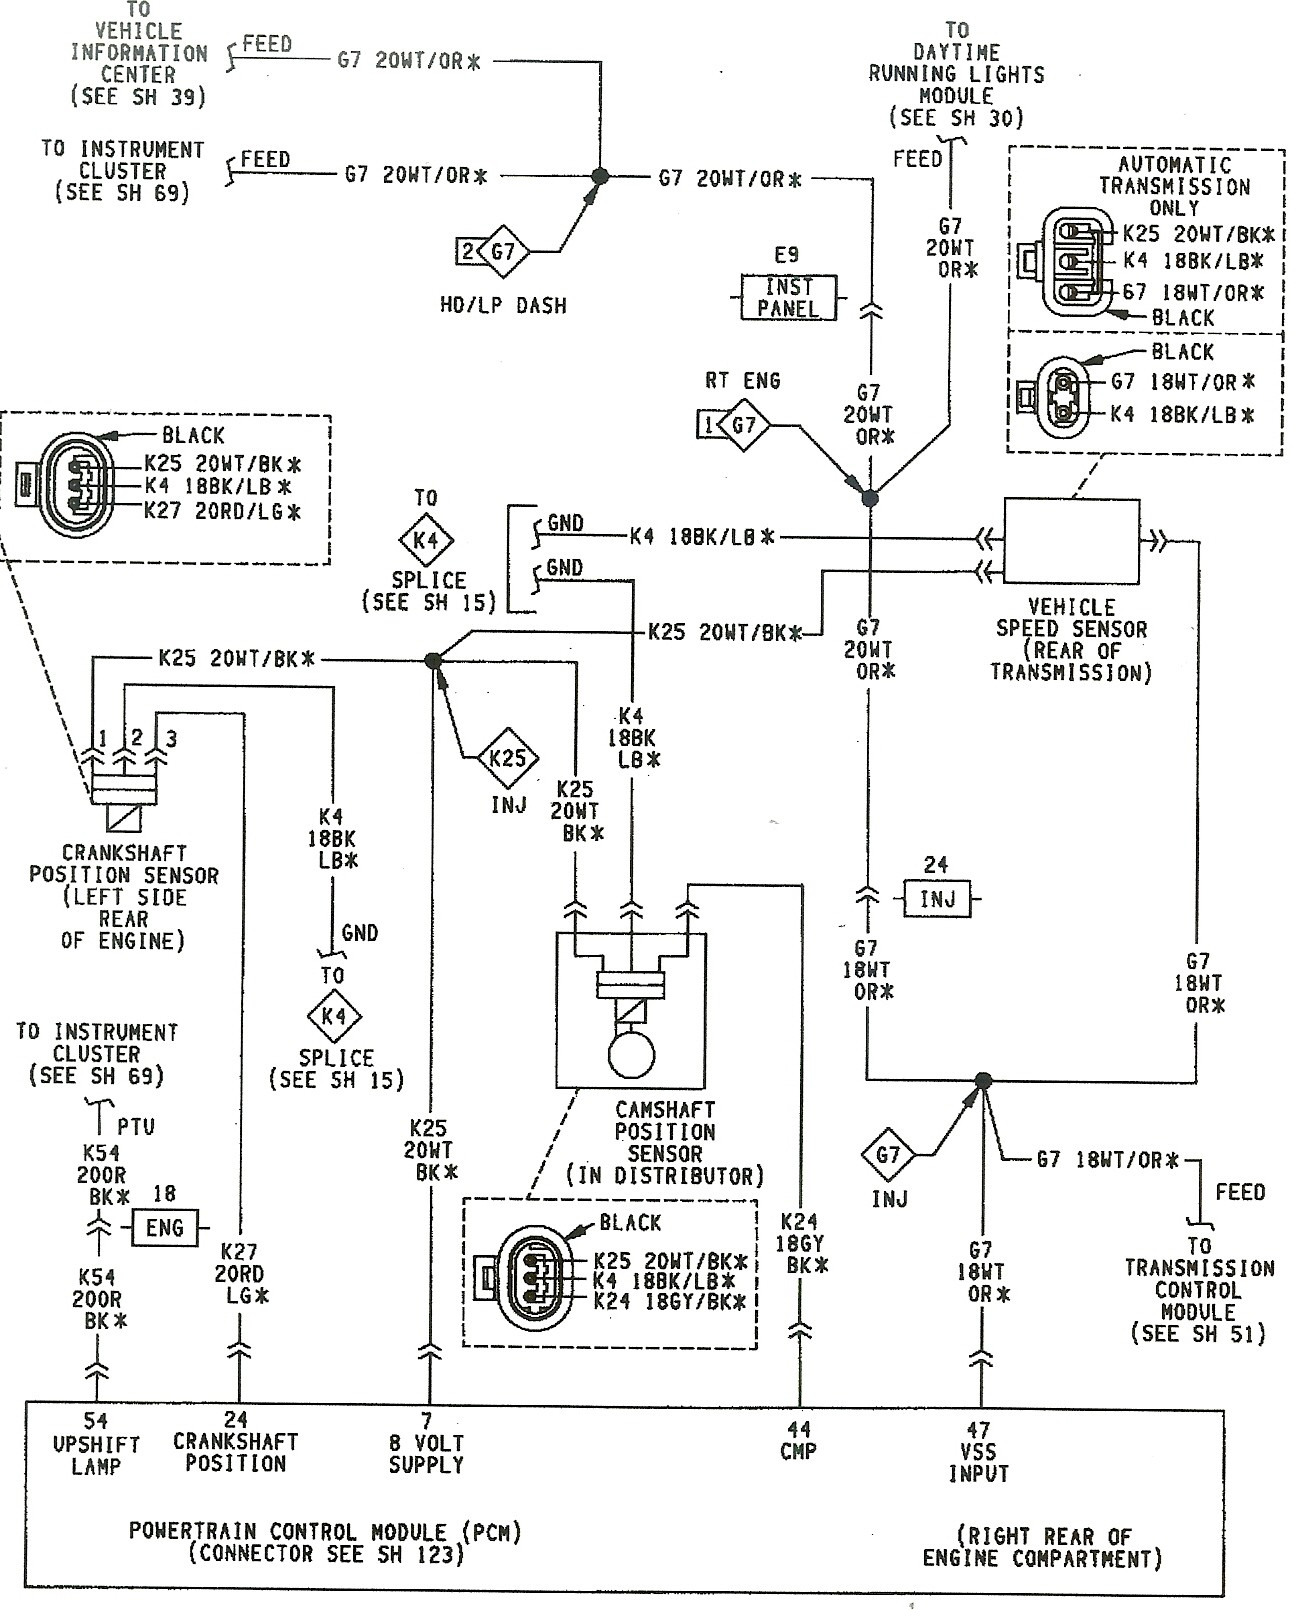 2004 Jeep Grand Cherokee Engine Diagram Grand Cherokee I Have A 93 Jeep Grand Cherokee with A 4 0l Of 2004 Jeep Grand Cherokee Engine Diagram